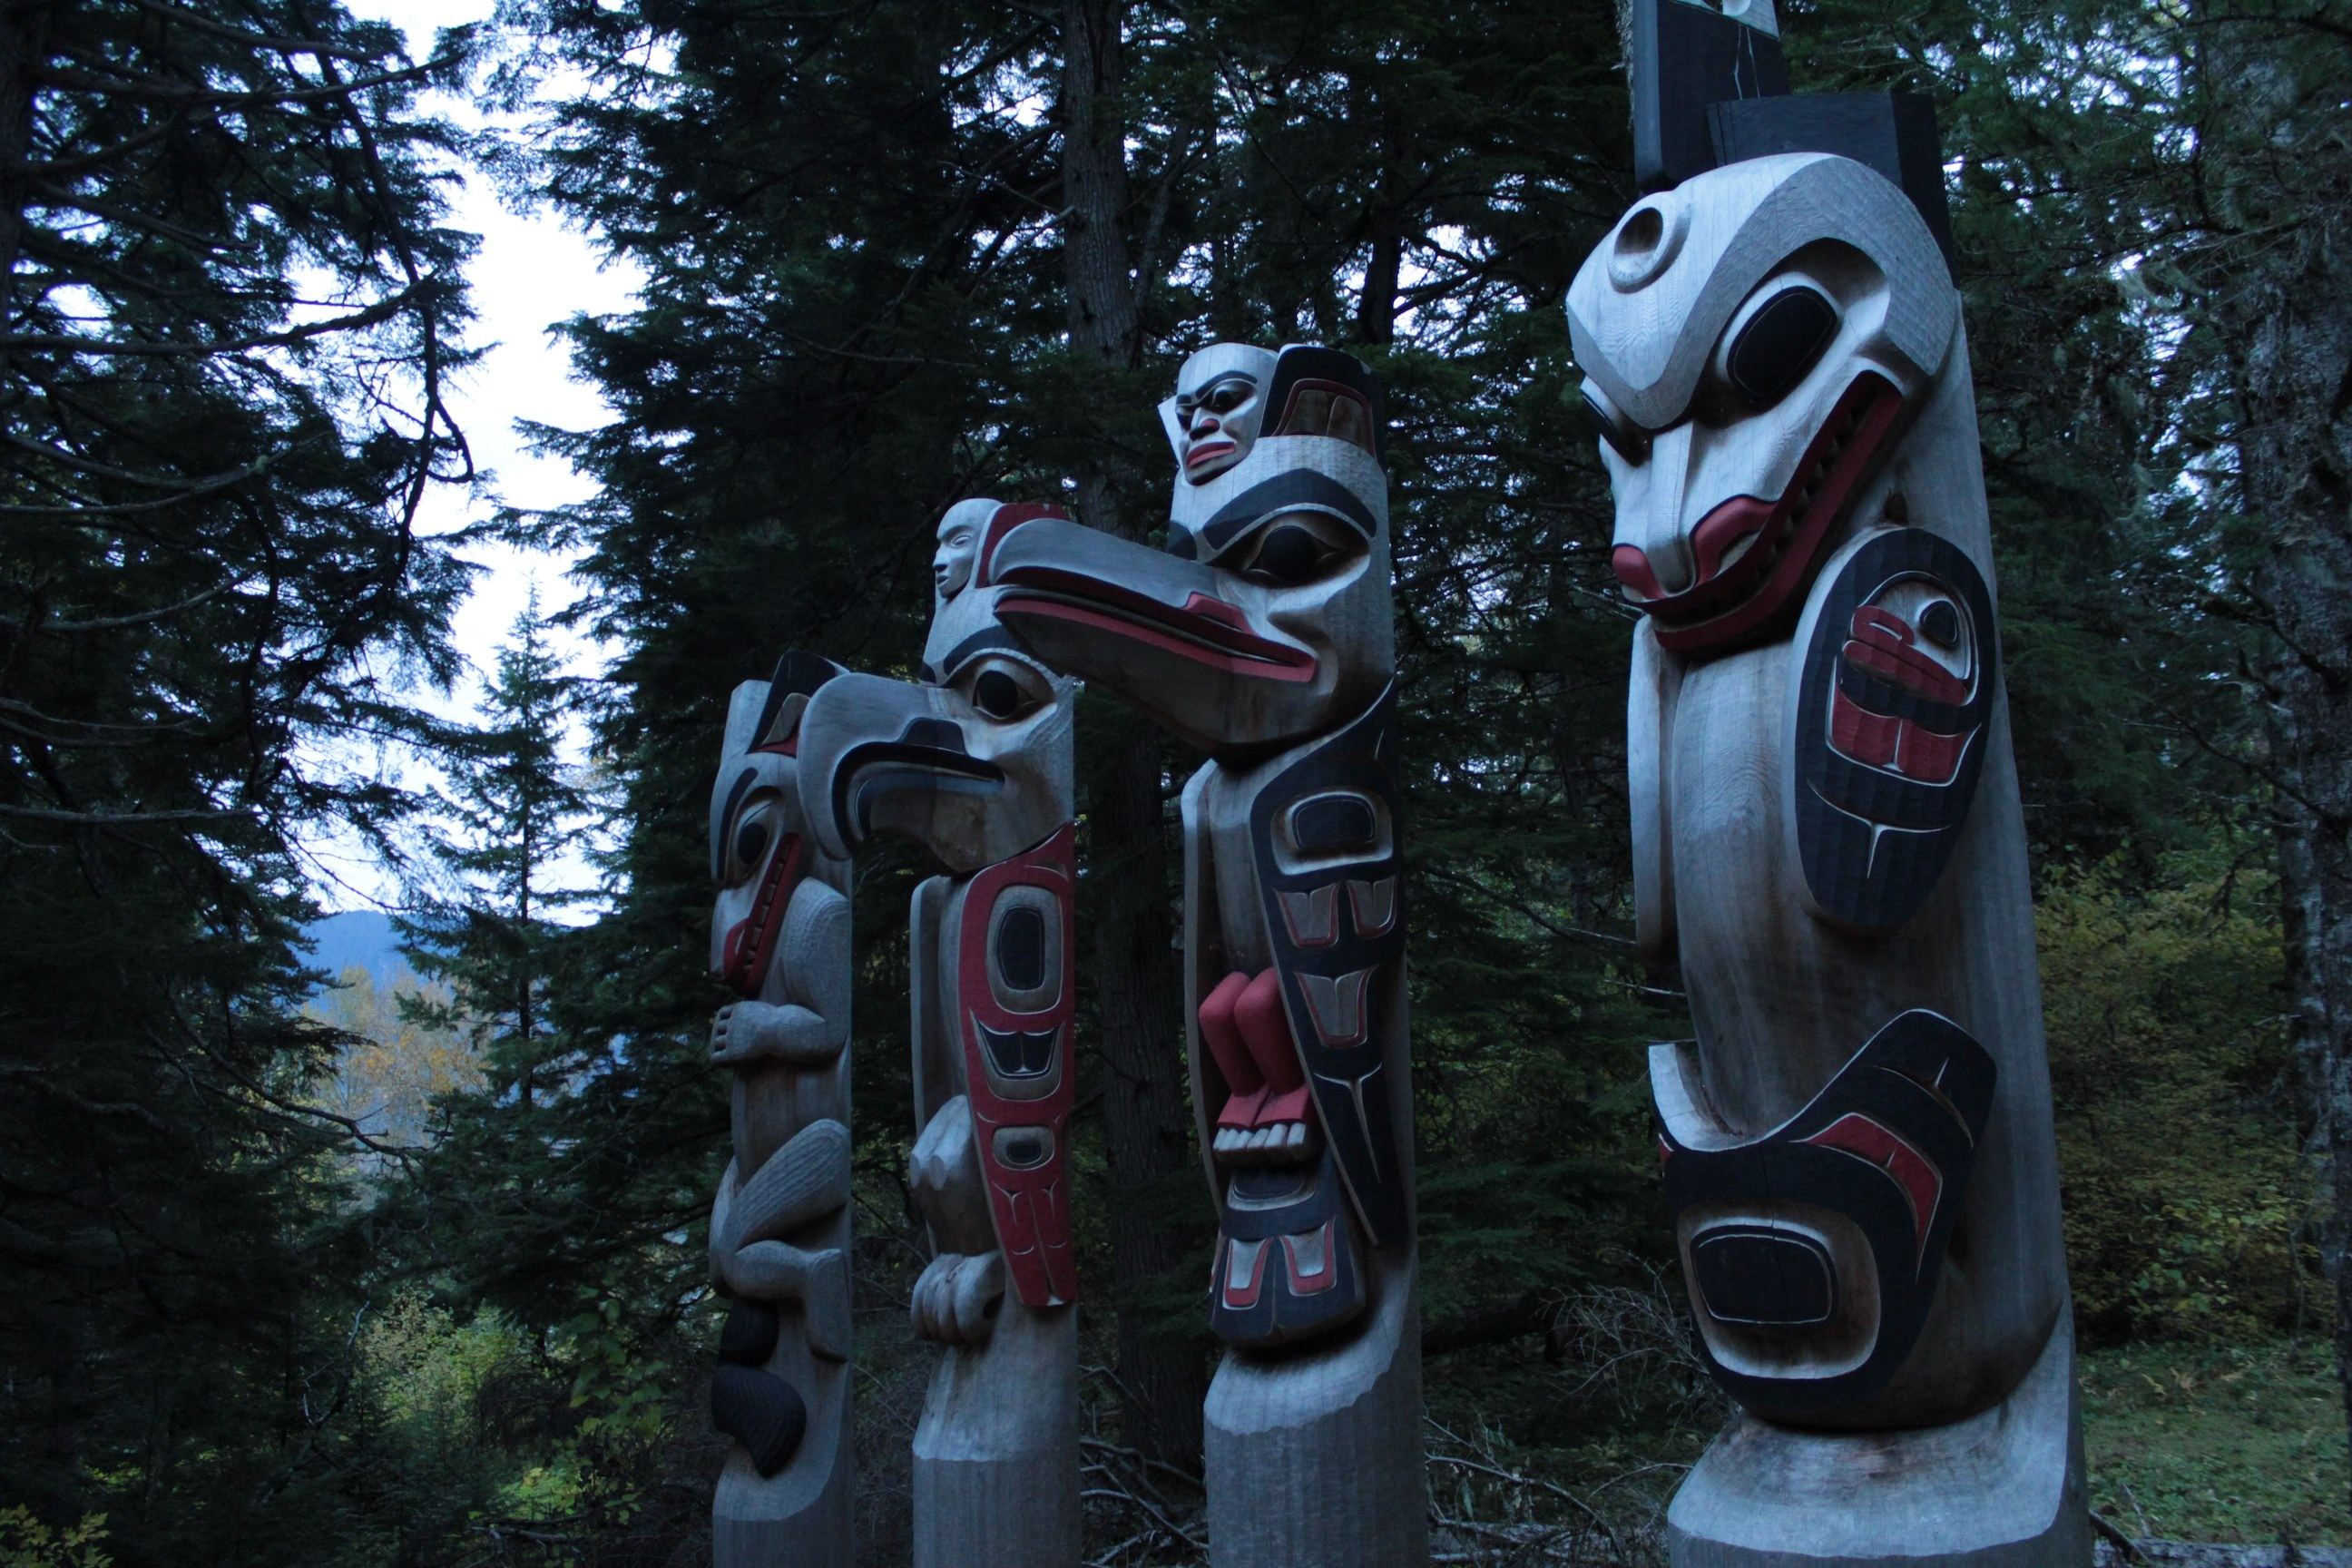 the totem poles watch over the forest and gitsaex village at